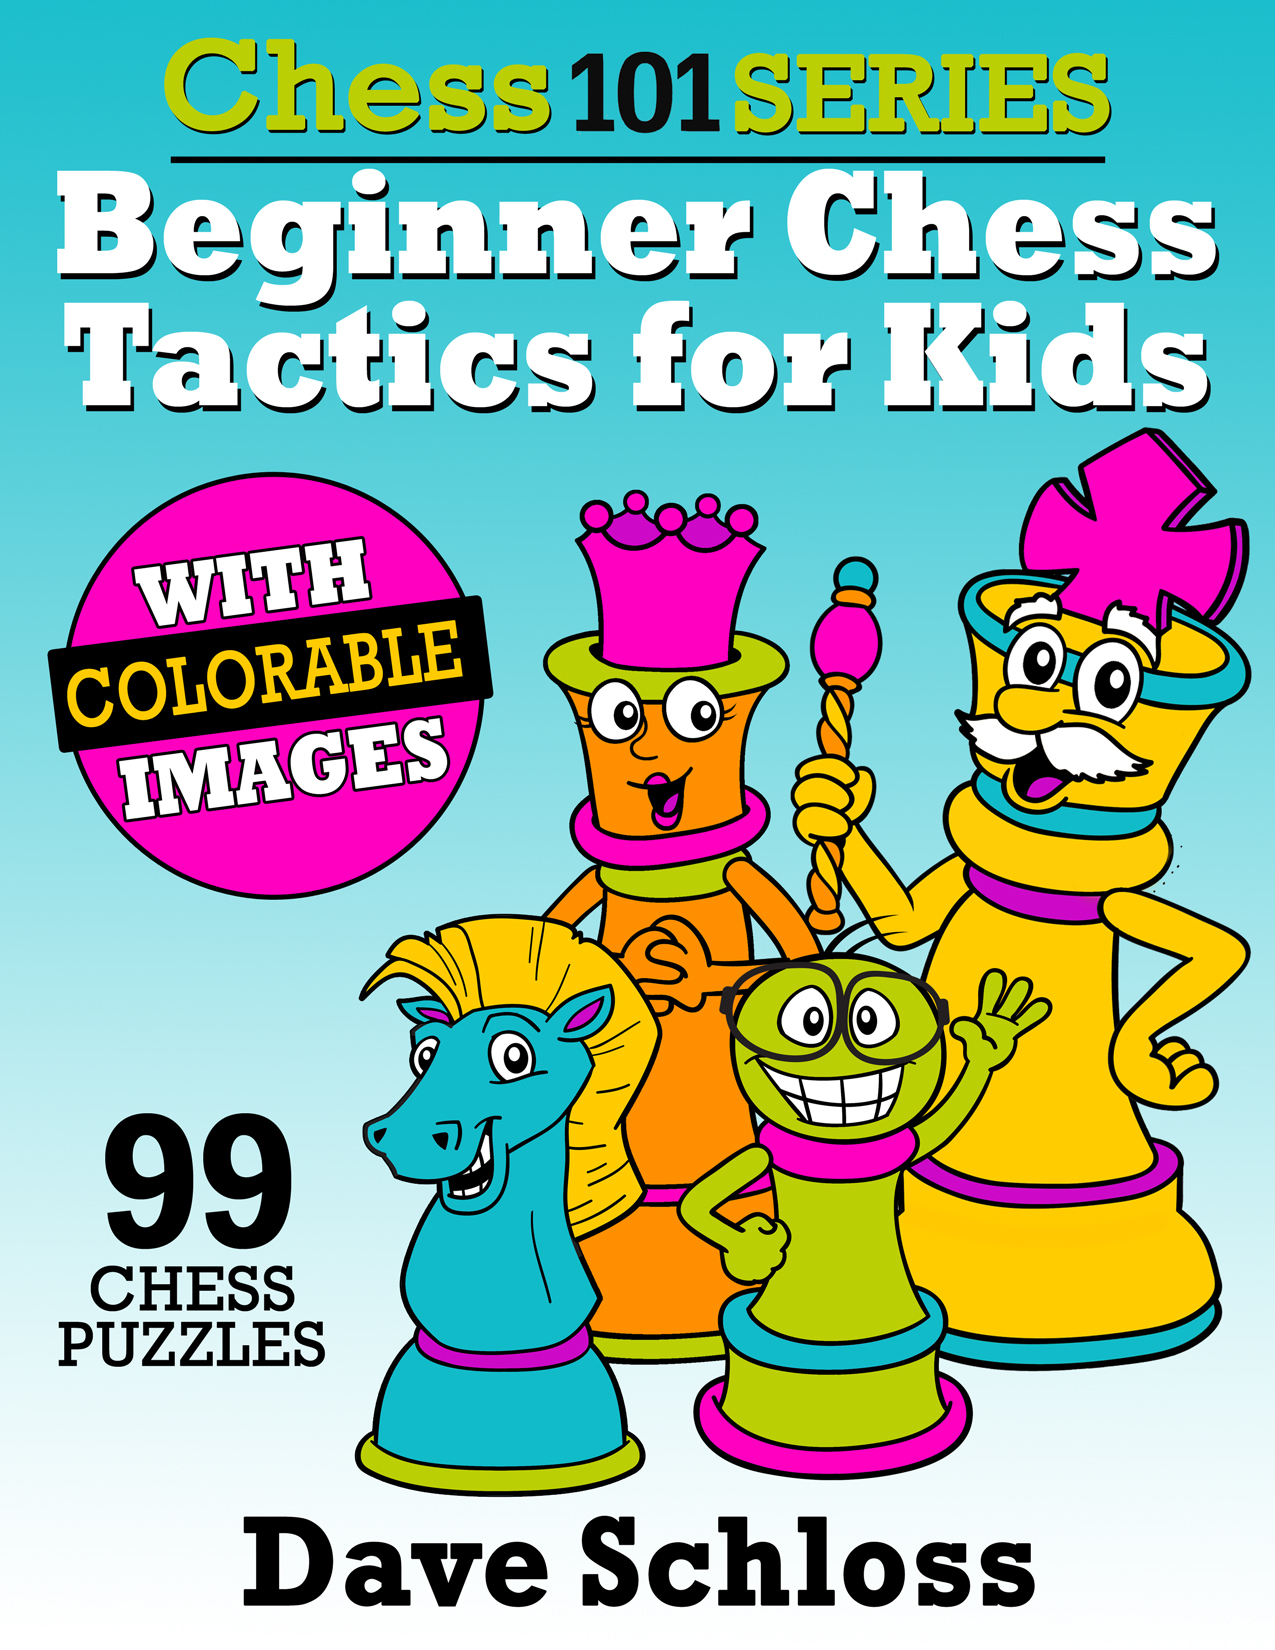 99 one-move chess tactics puzzles for kids rated 1,000 and below.